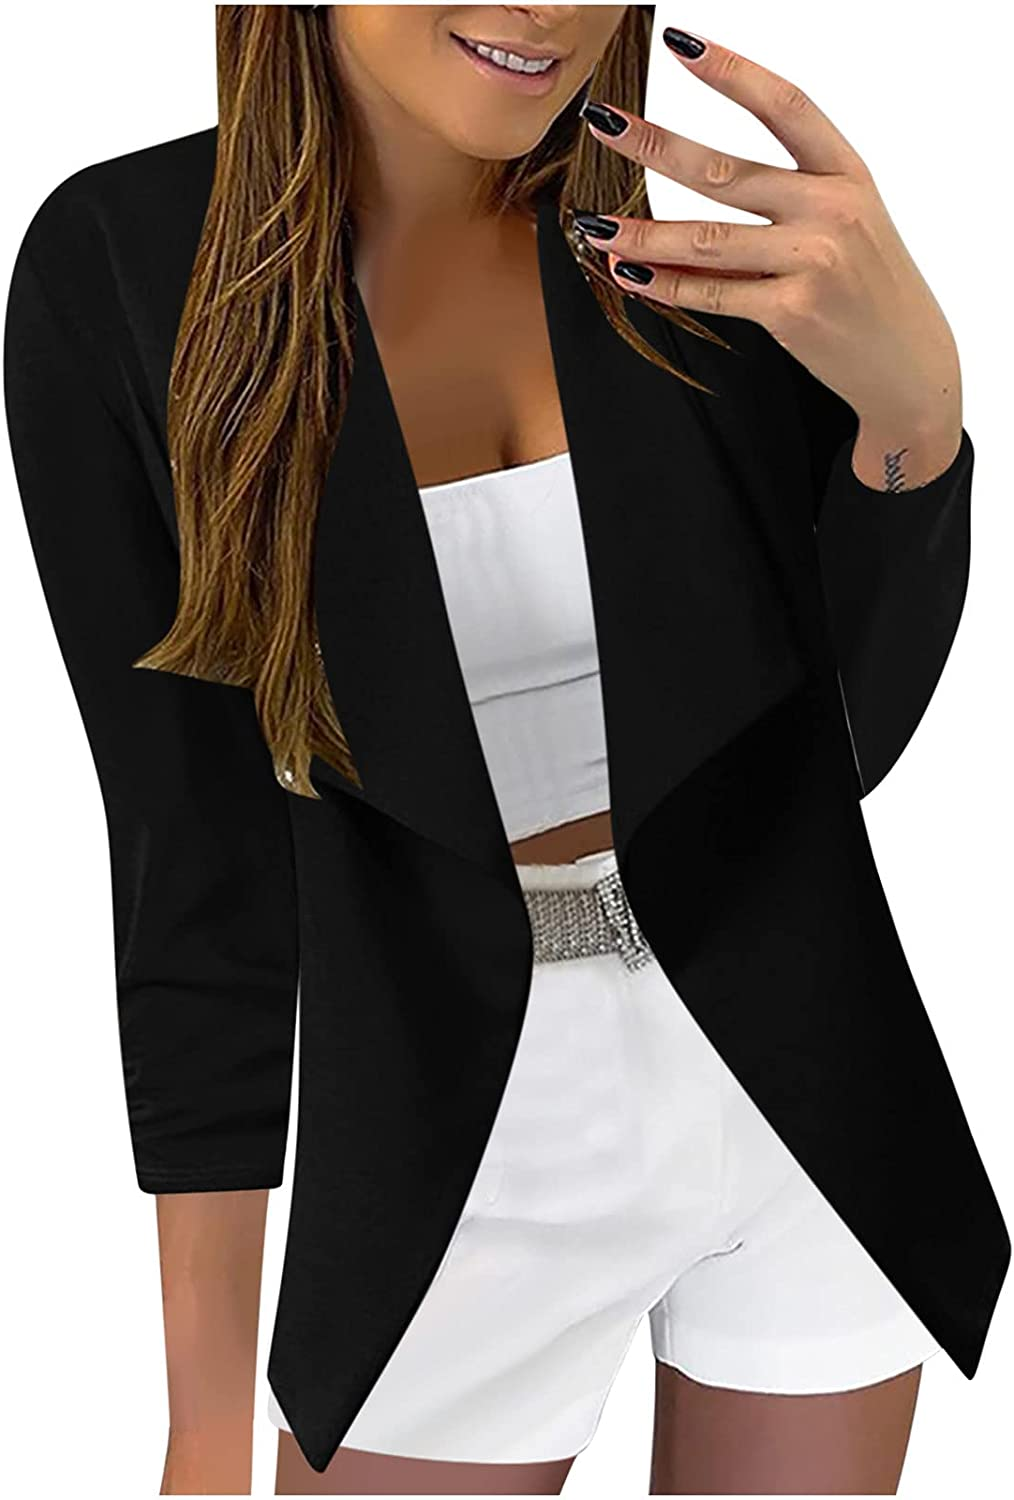 Xinantime Women's Printed Blazers Slim Fit Lapel Jacket 3/4 Sleeve Office Suit Ladies Casual Open-Front Cardigan Outerwear